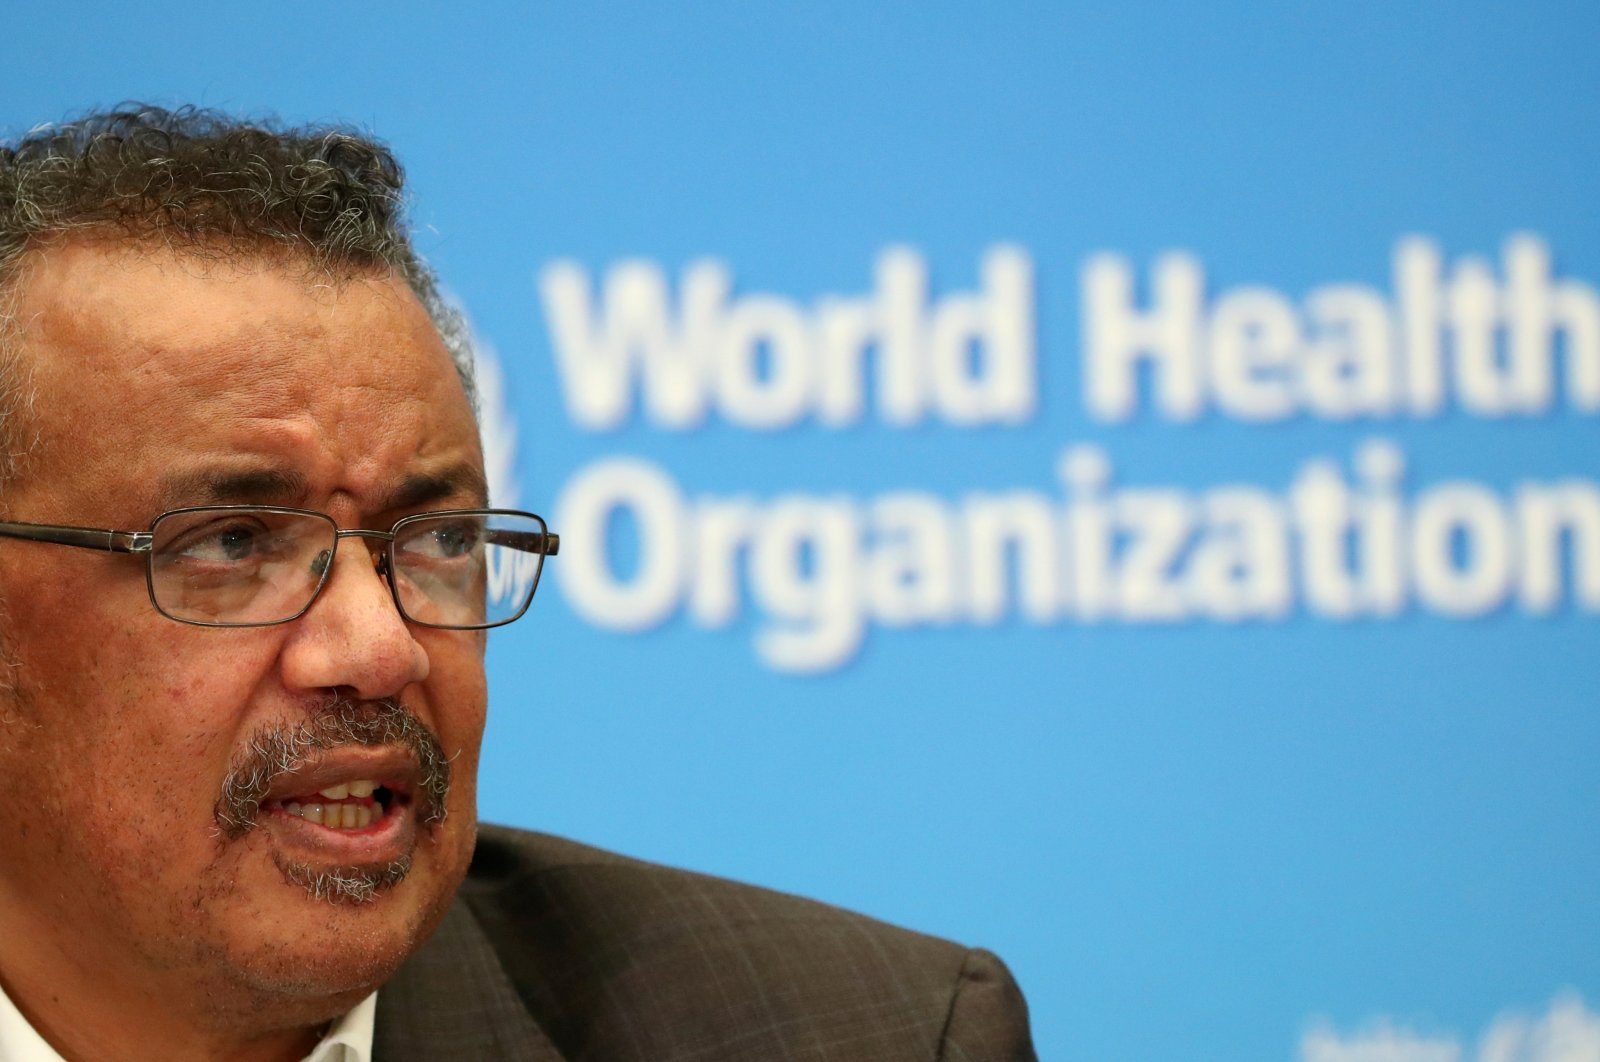 World Health Organization (WHO) Director-General Tedros Adhanom Ghebreyesus speaks during a news conference in Geneva, Switzerland, Jan. 30, 2020. (Reuters Photo)